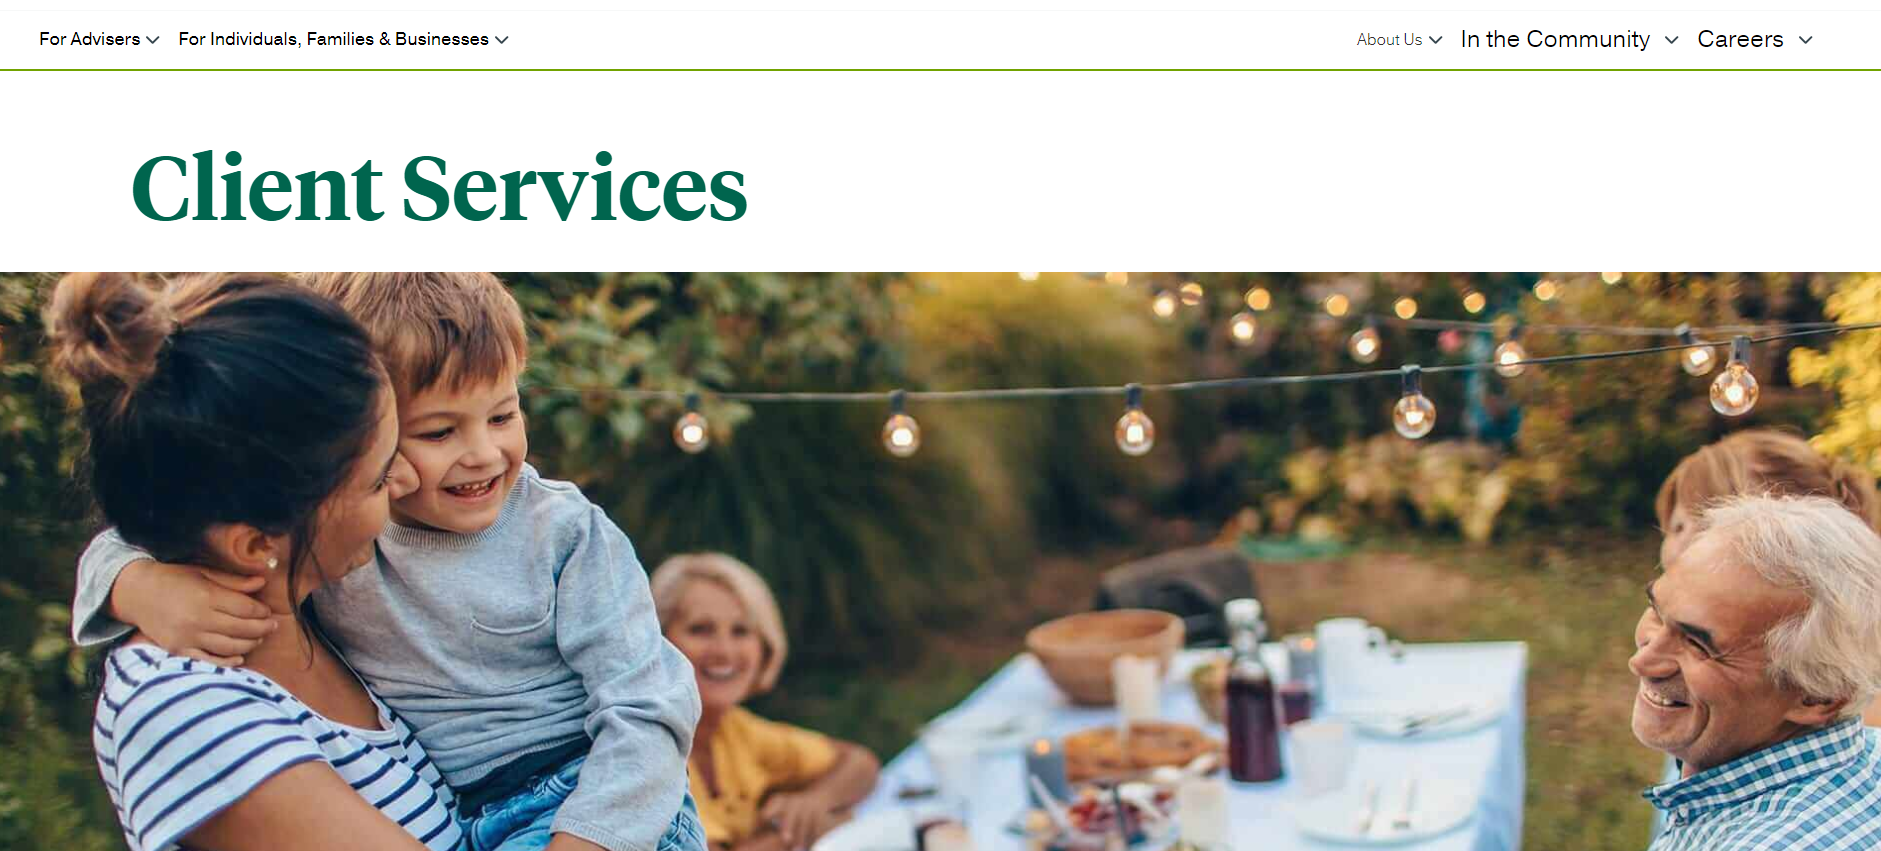 Penn Mutual Website Client services page